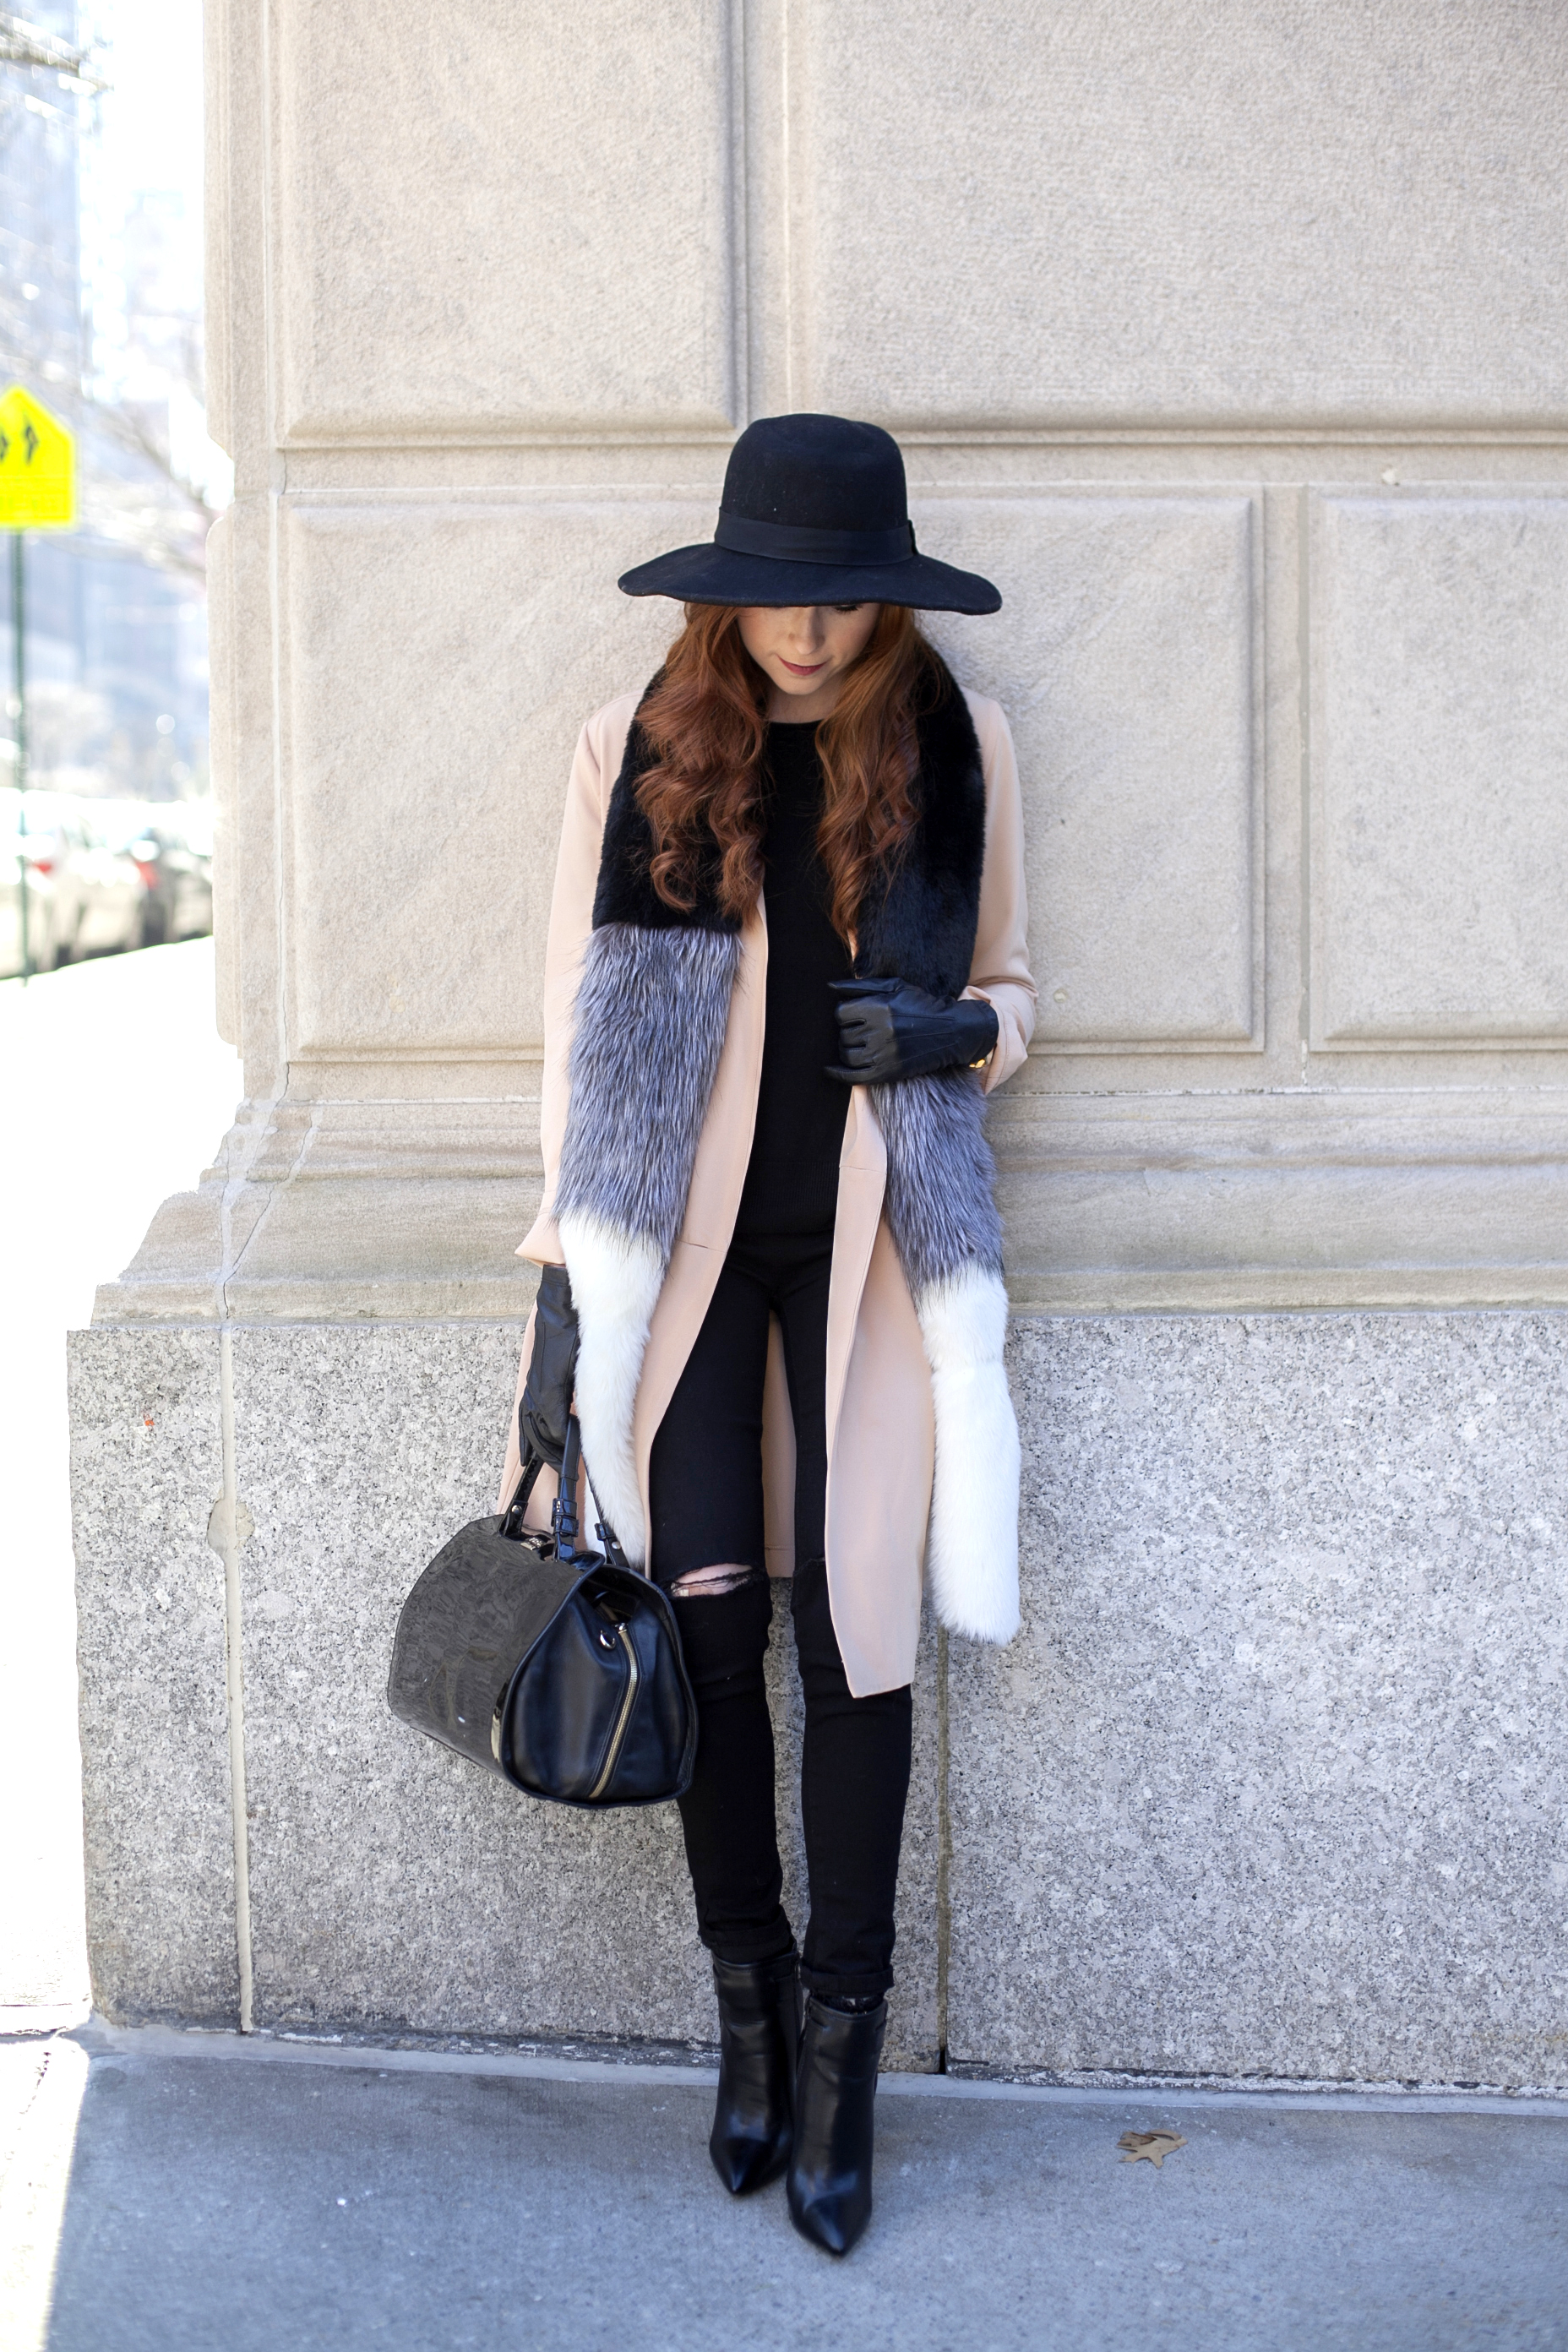 Winter Layering - Faux Fur Stole - NYC Winter Style